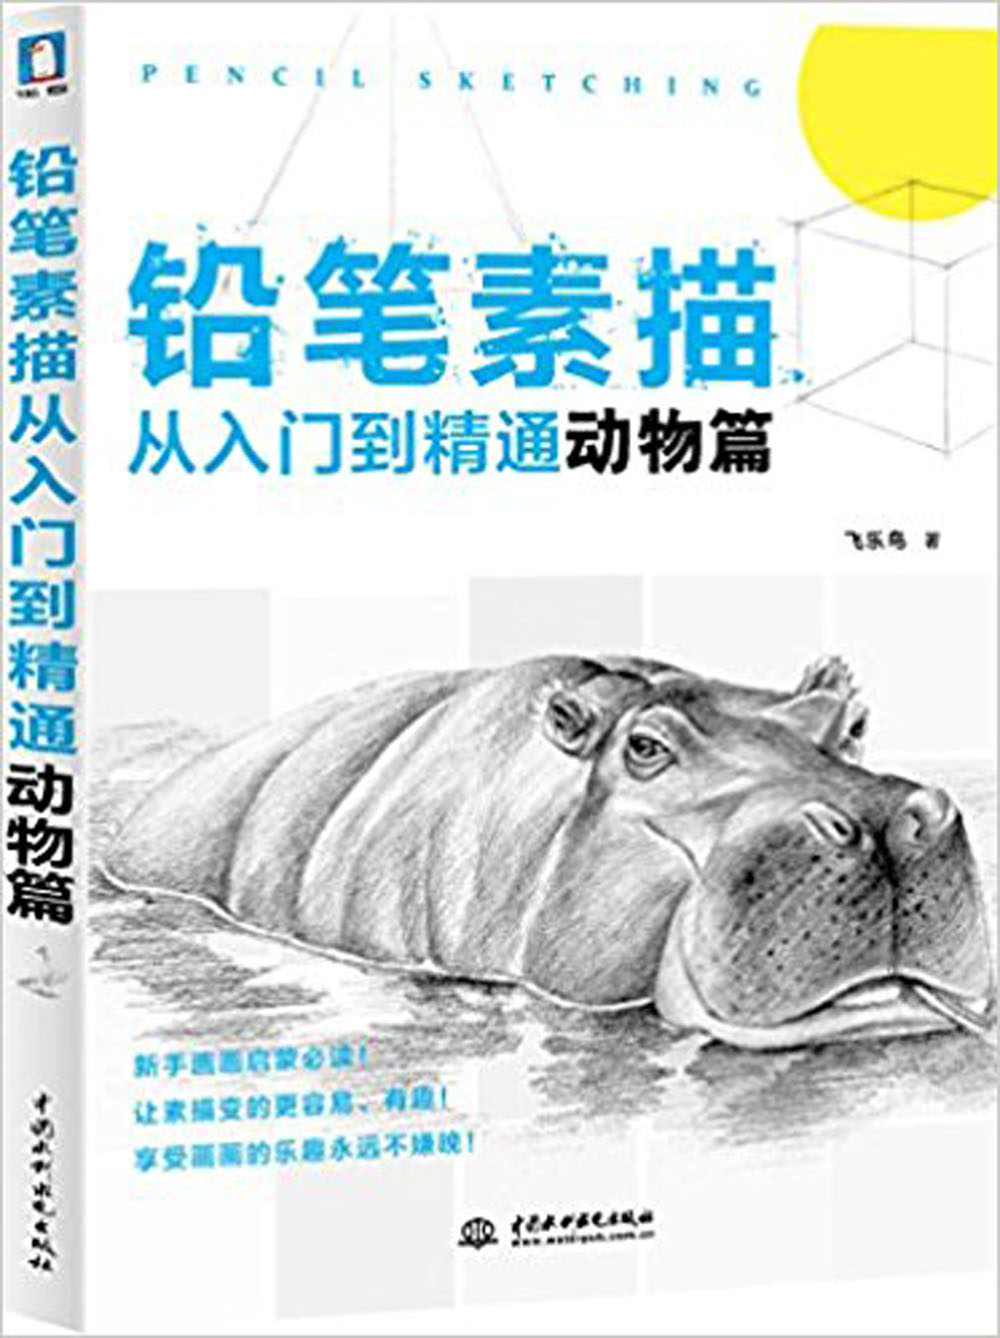 Pencil Sketch From Novice To Professional Book:Zero-based Sketch Tutorial Books Teaching Materials About Animal Pet Dog